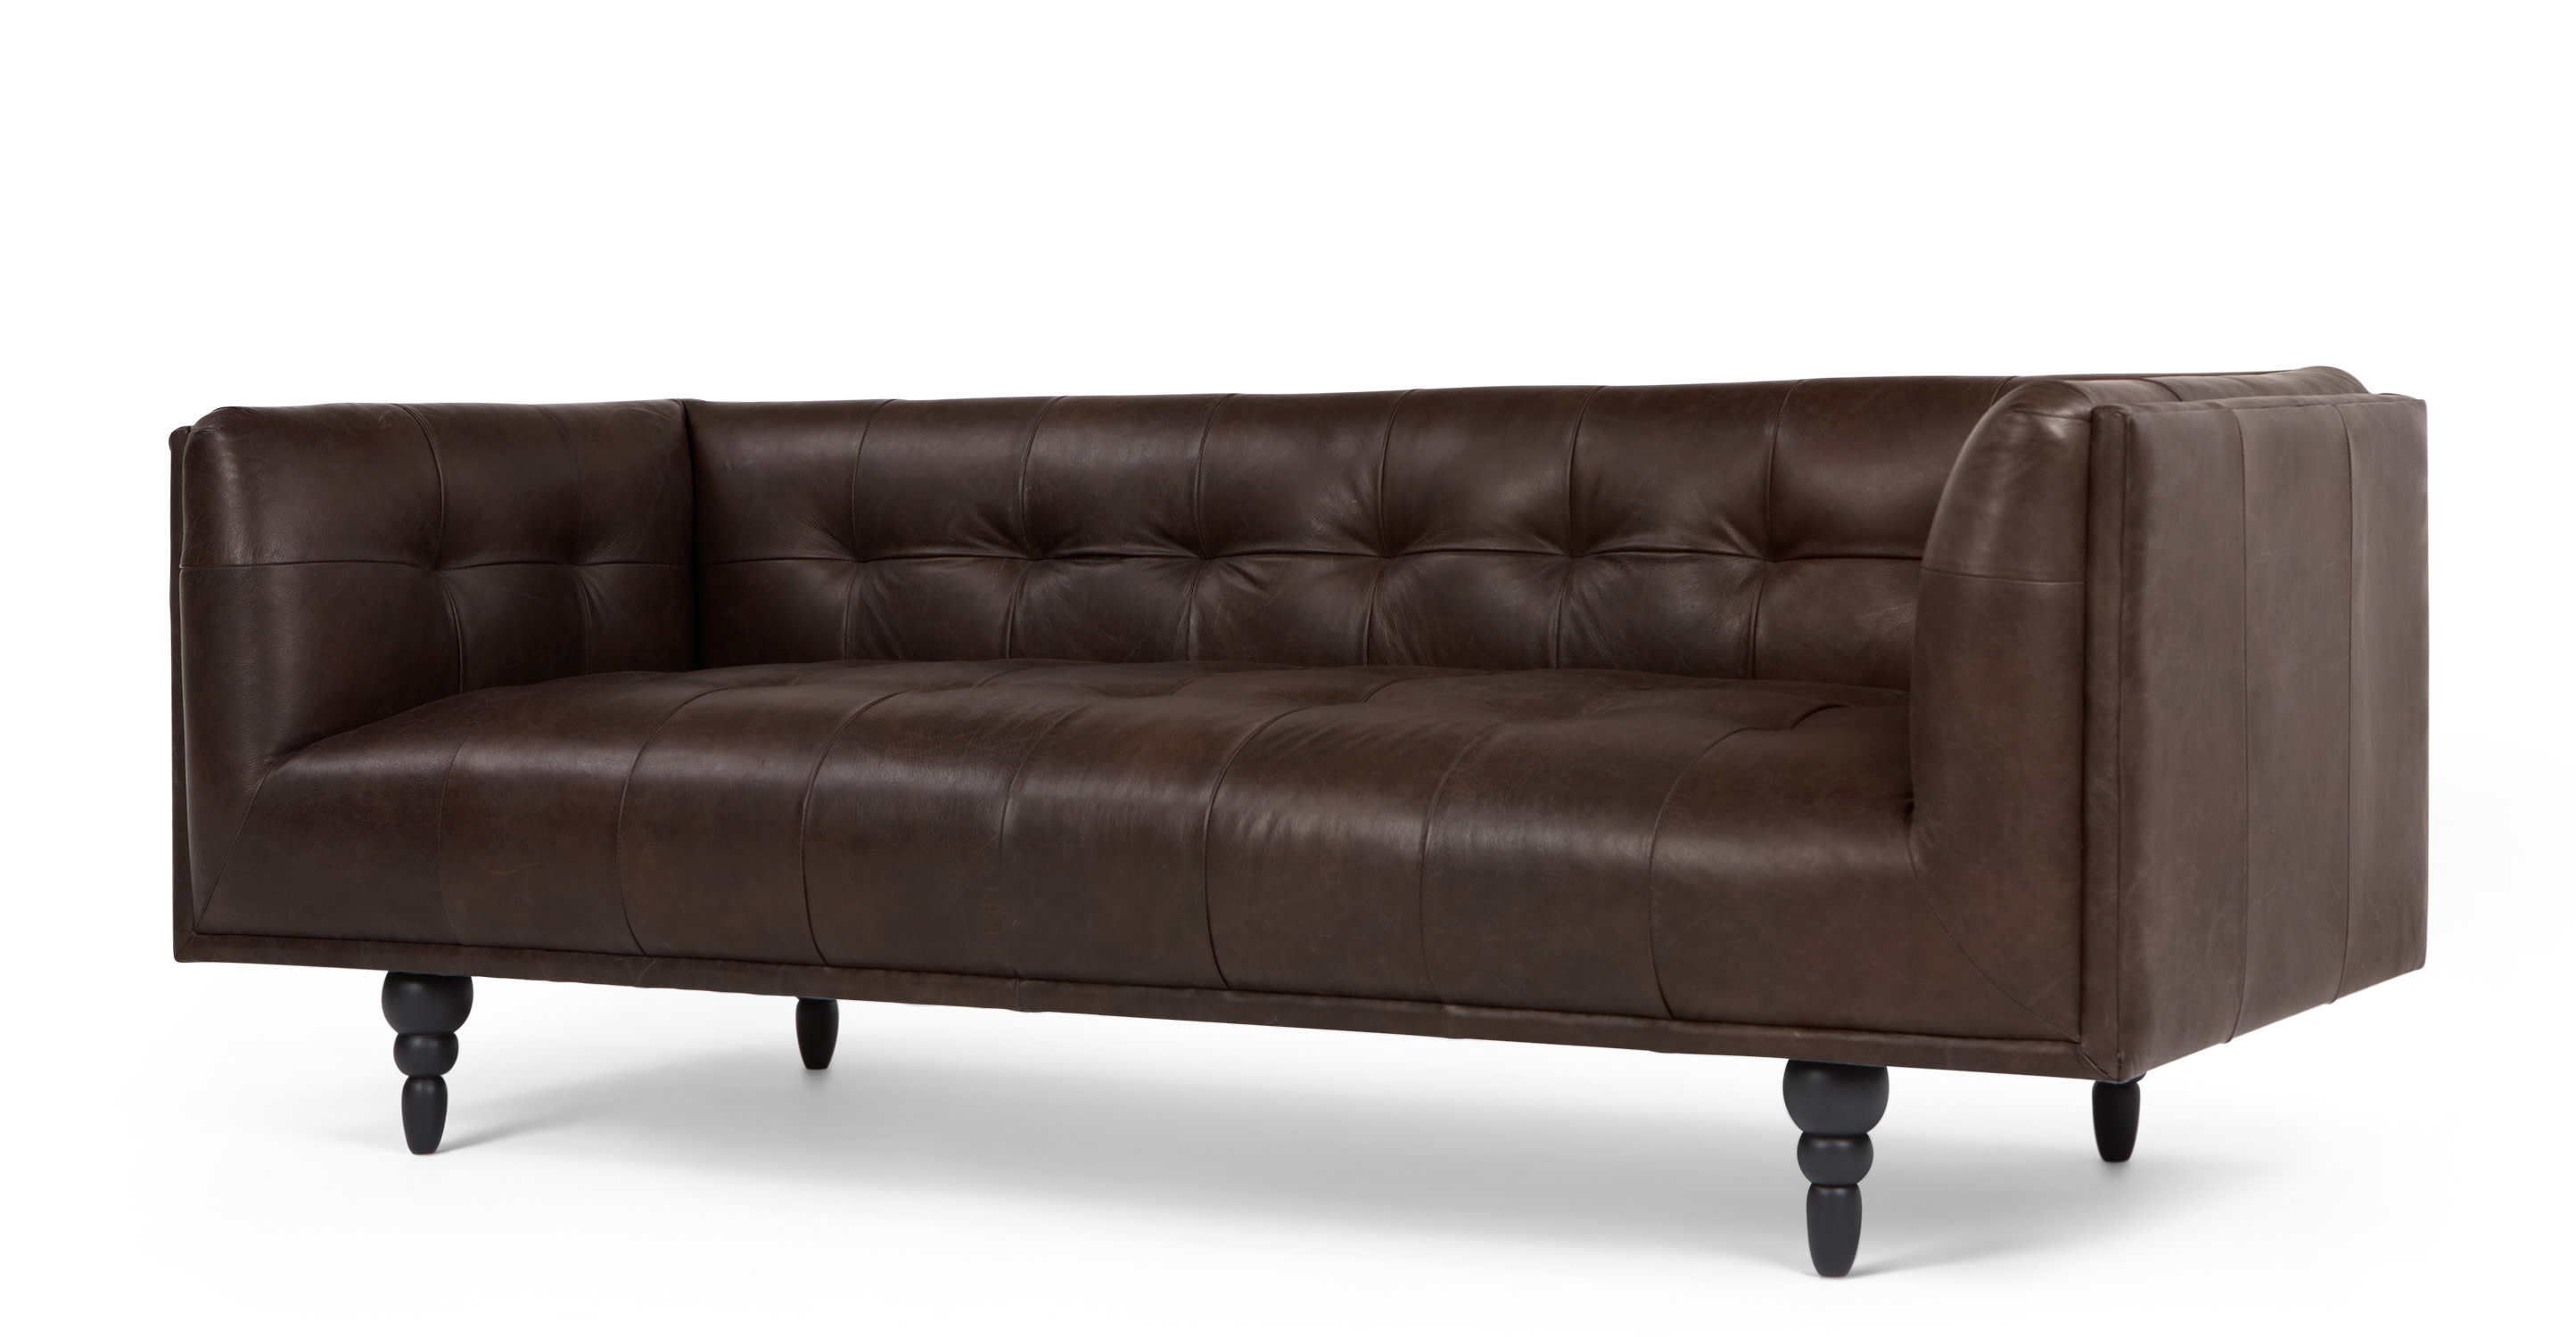 connor 3 seater sofa vintage brown premium leather. Black Bedroom Furniture Sets. Home Design Ideas